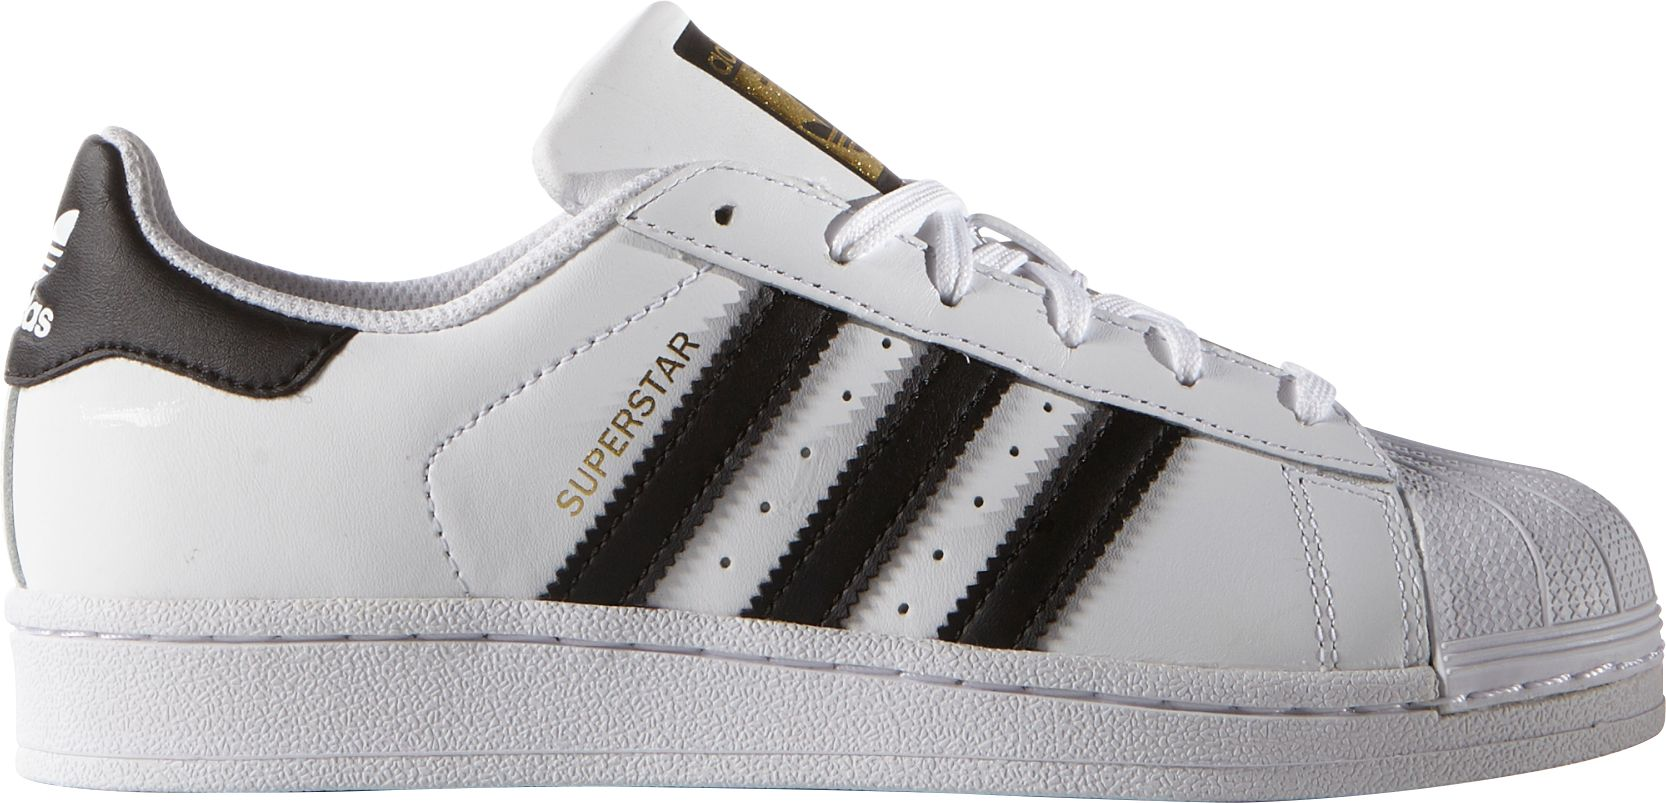 Buy adidas superstar 80s womens purple cheap Rimslow